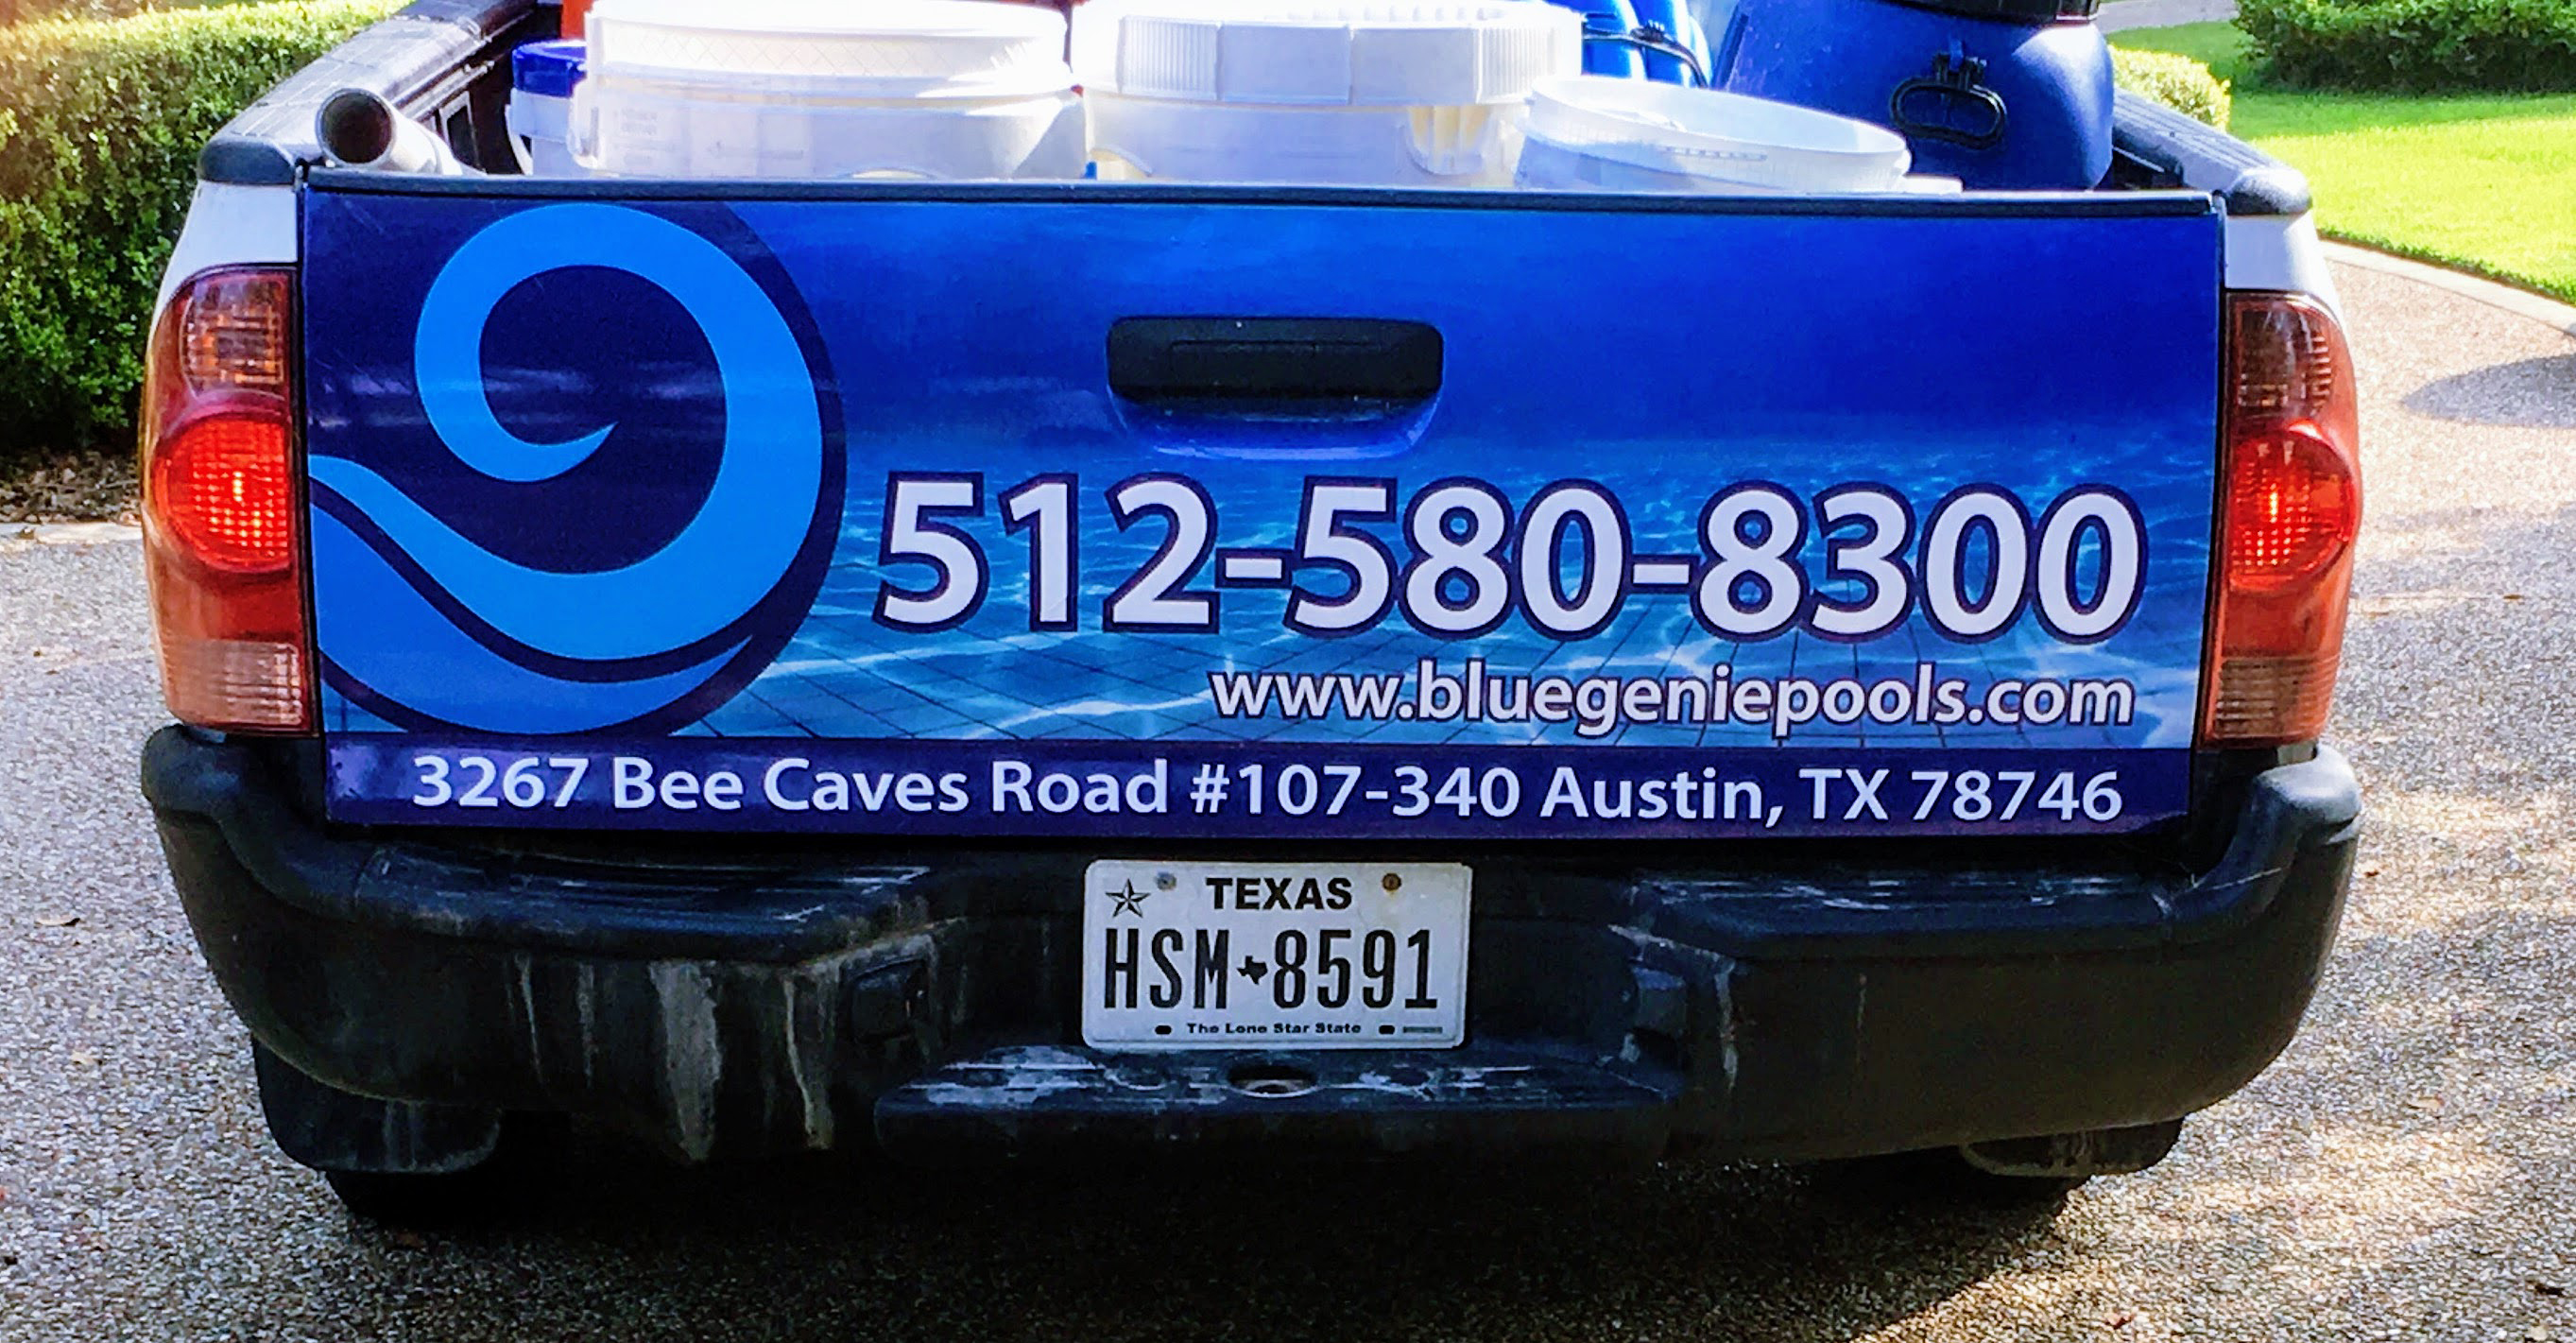 Blue Genie Pools truck decal